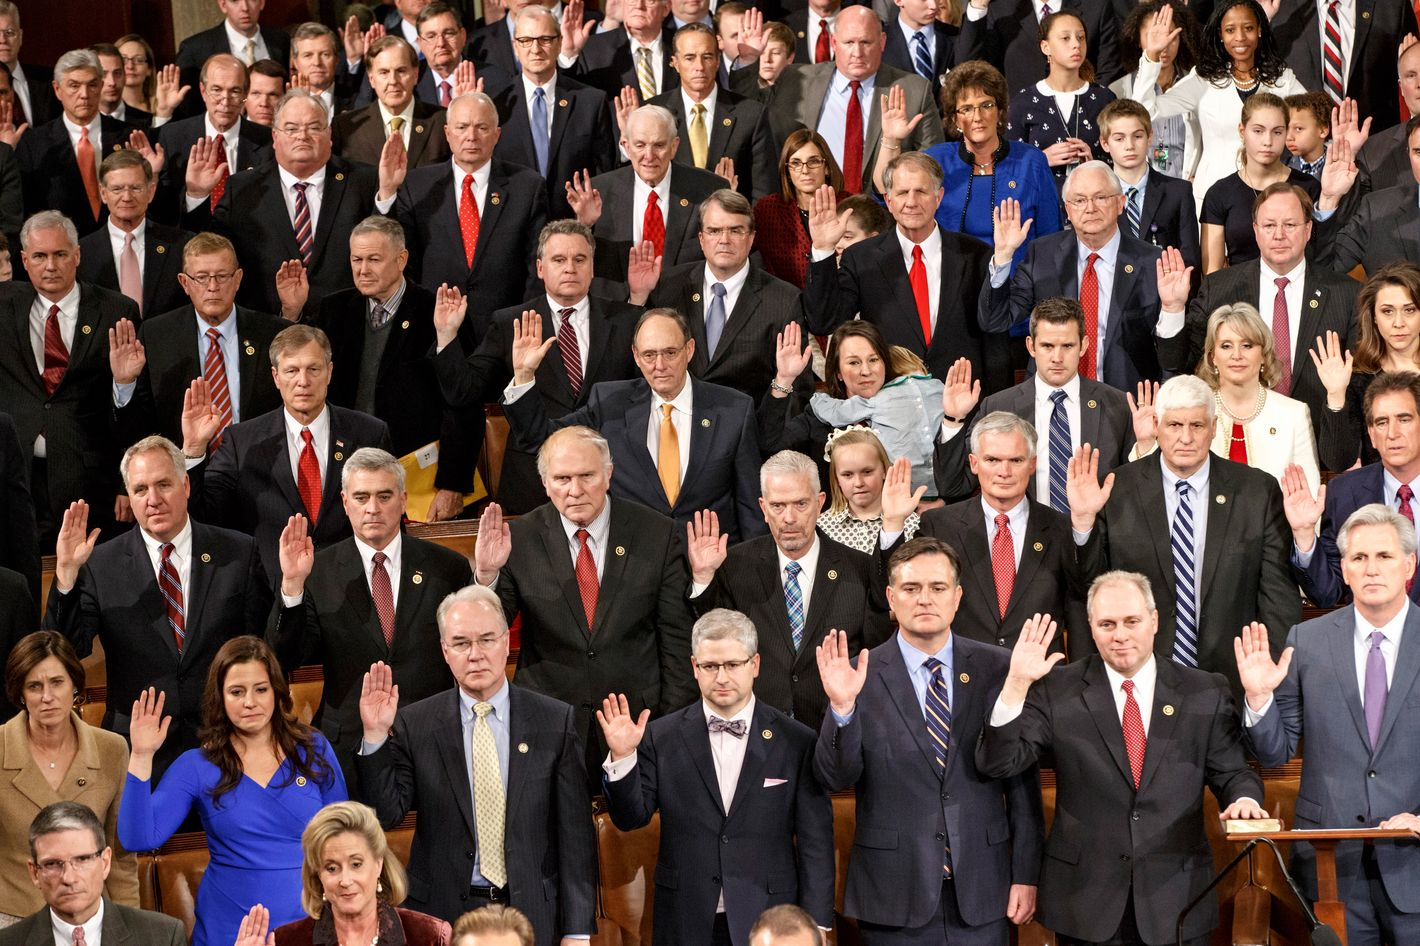 Members of the House of Representatives on the GOP side raise their hands for the oath of office at the opening session of the 114th Congress, Tuesday, Jan. 6, 2015, on Capitol Hill in Washington. House Speaker John Boehner of Ohio, won a third term despite a tea party-backed effort to unseat him.